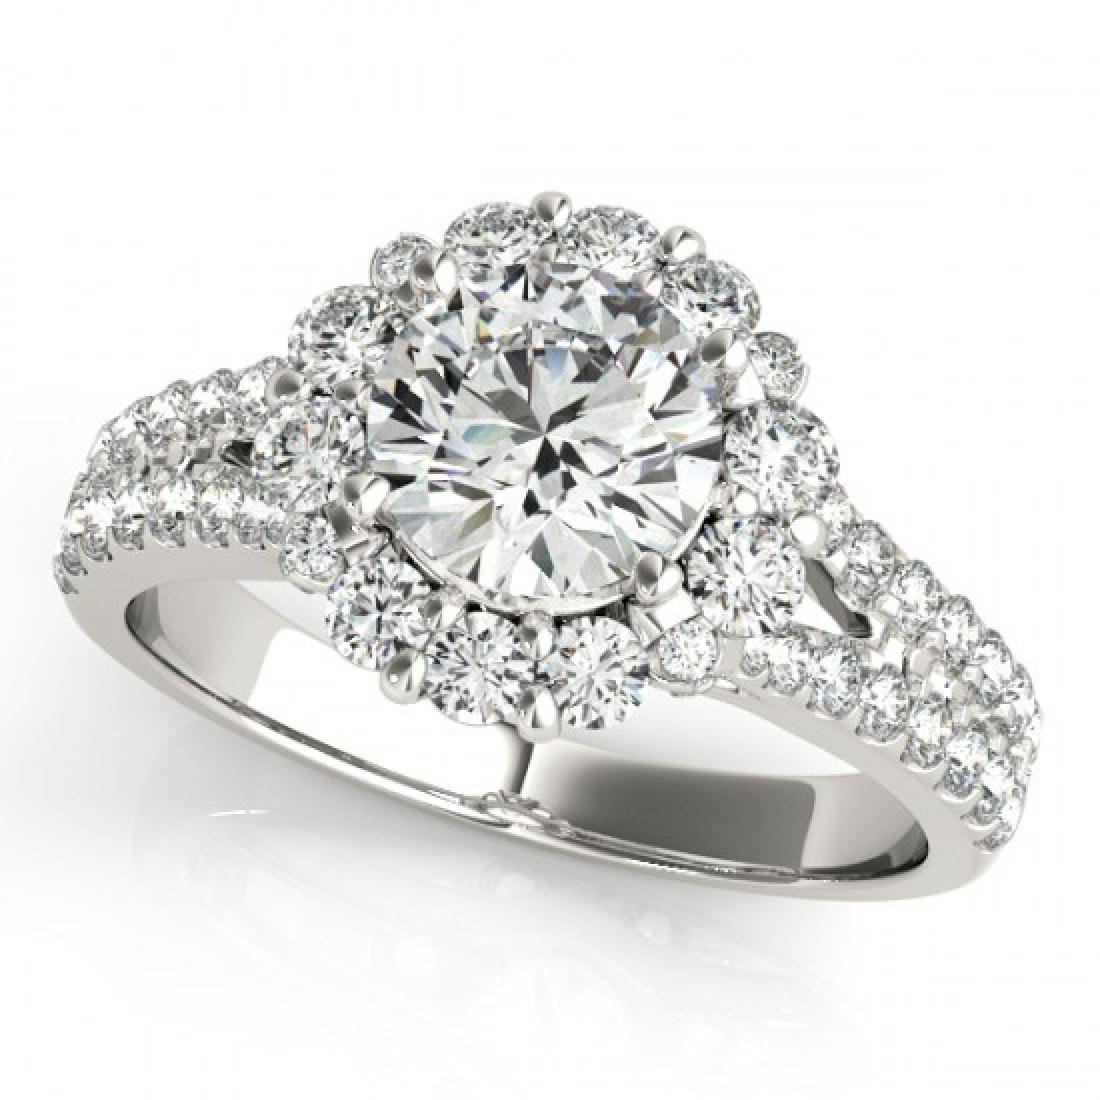 2.51 CTW Certified VS/SI Diamond Solitaire Halo Ring